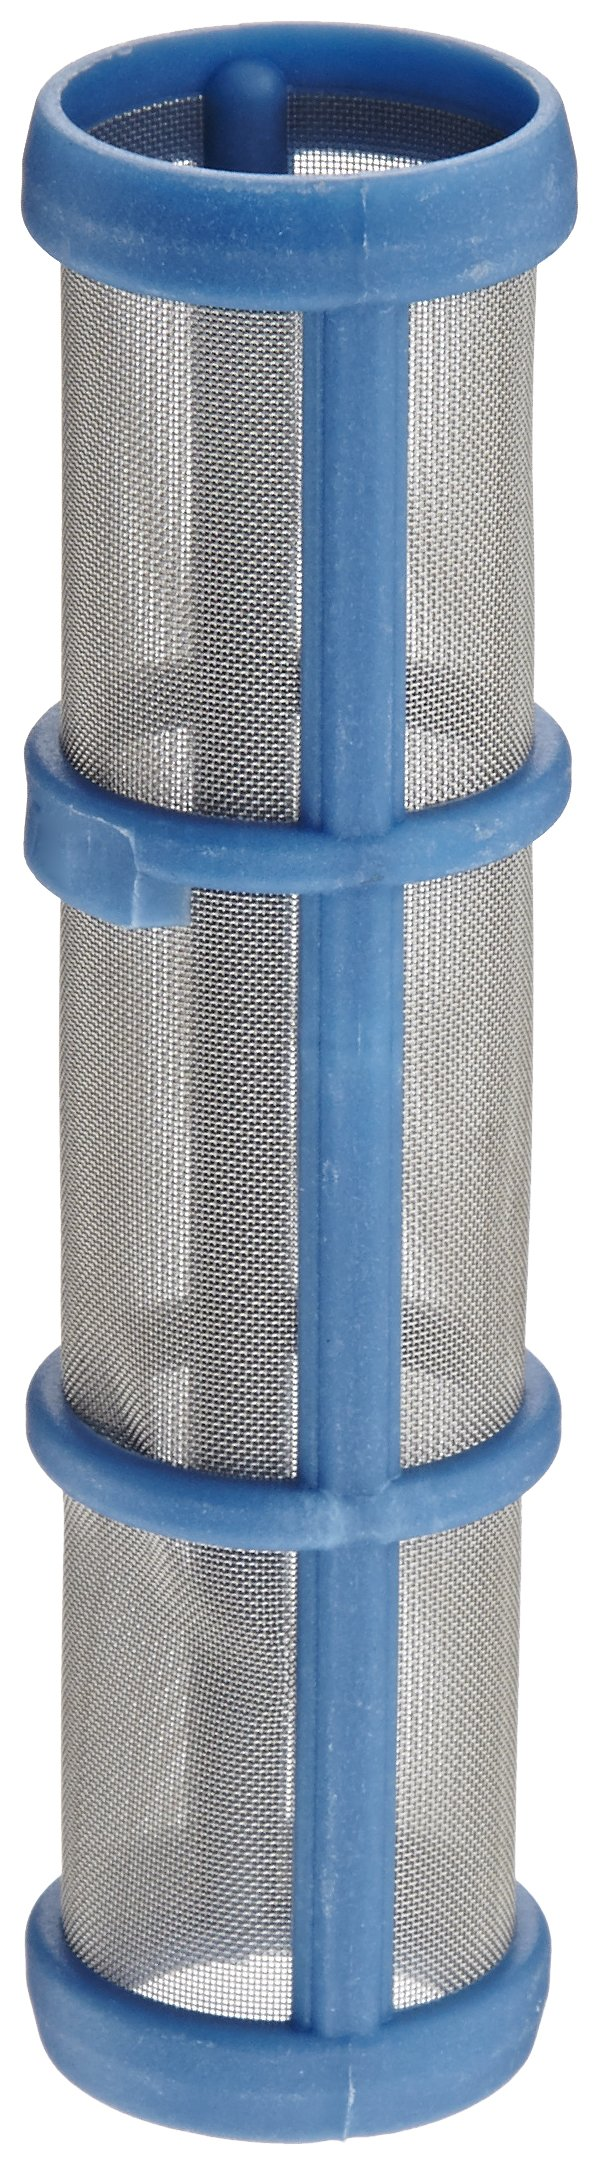 Banjo Stainless Steel 316 Screen for Y Strainer, 80 Mesh, 1/2-3/4